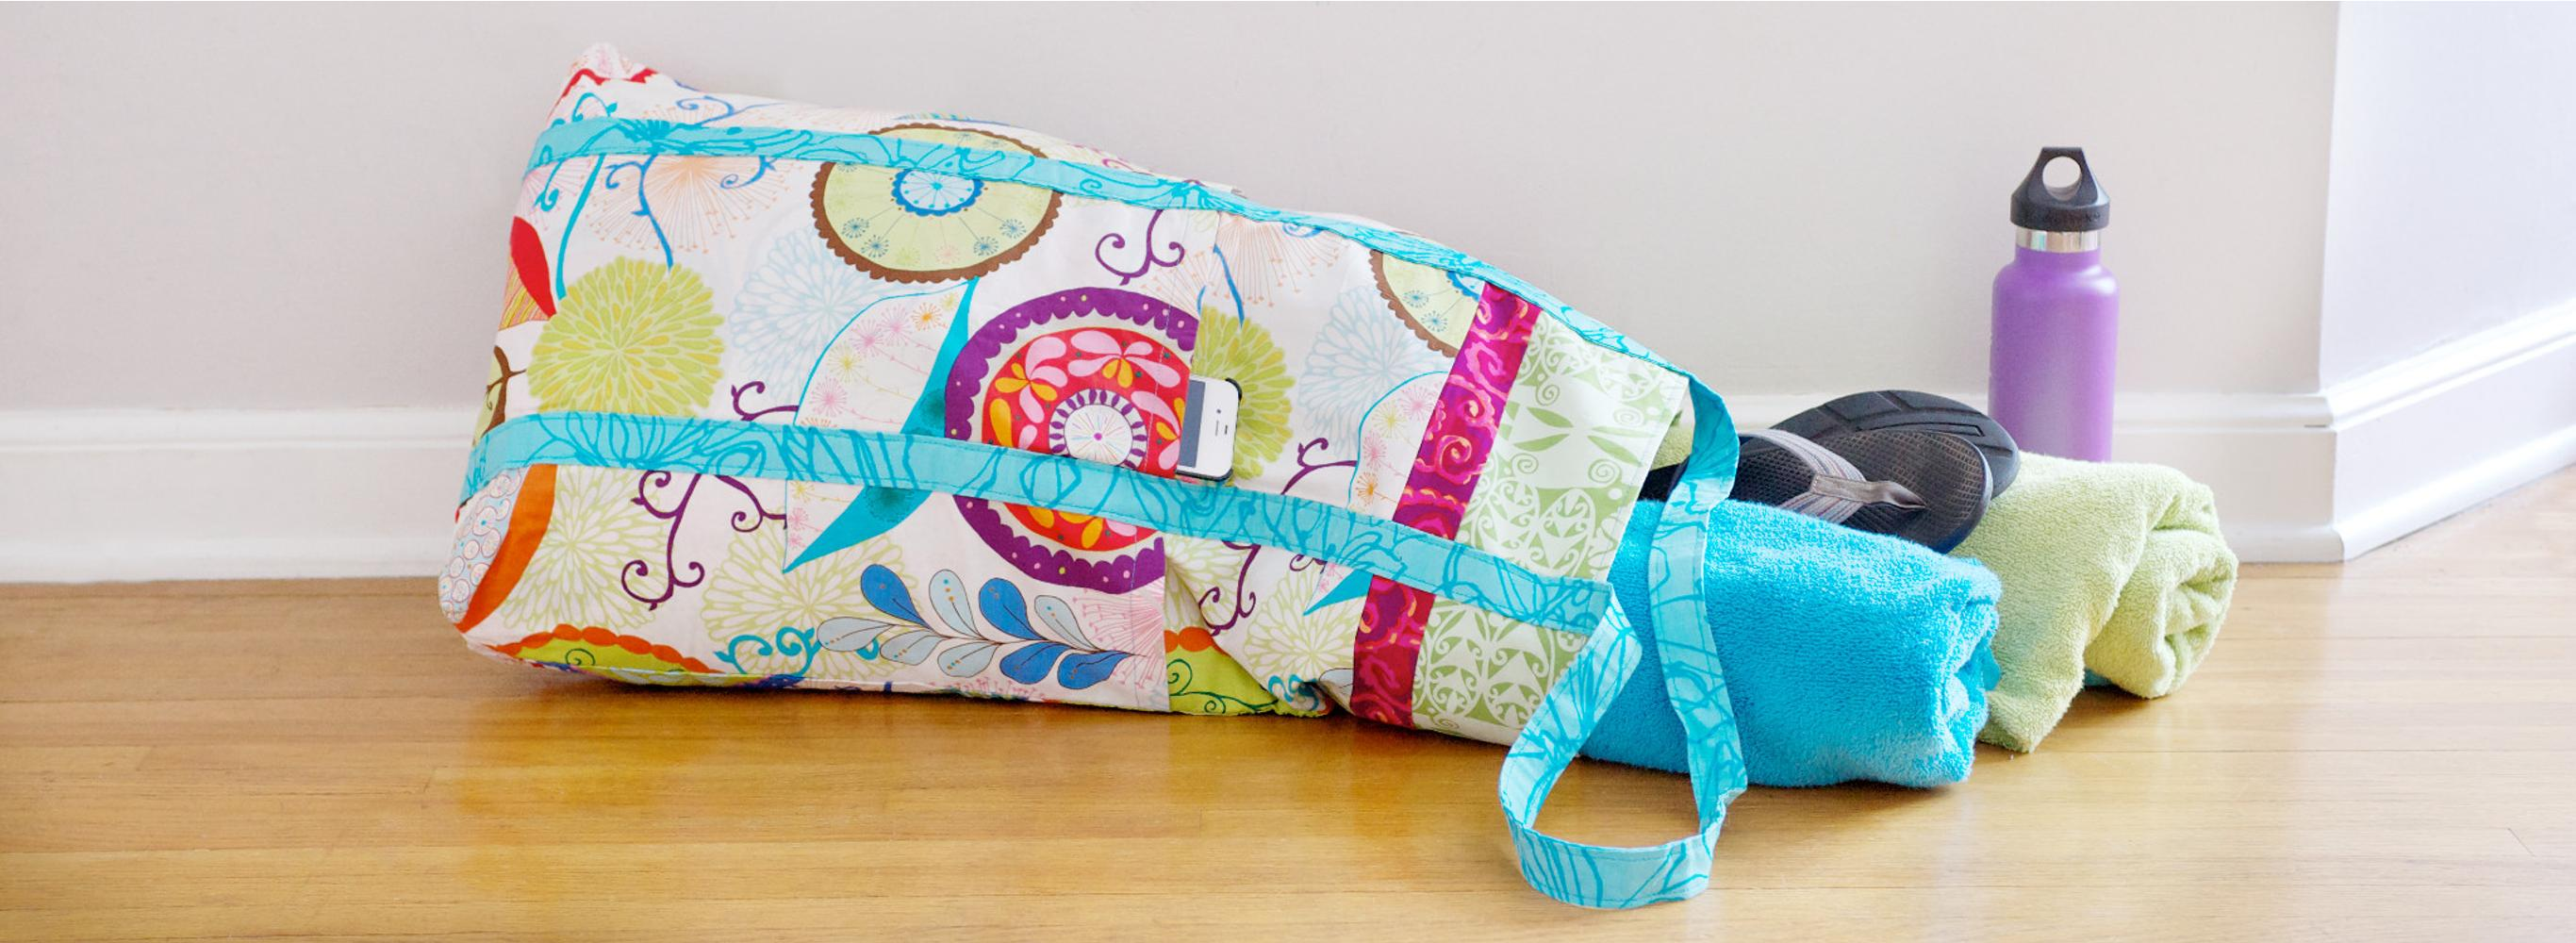 Project: Summer Beach Bag